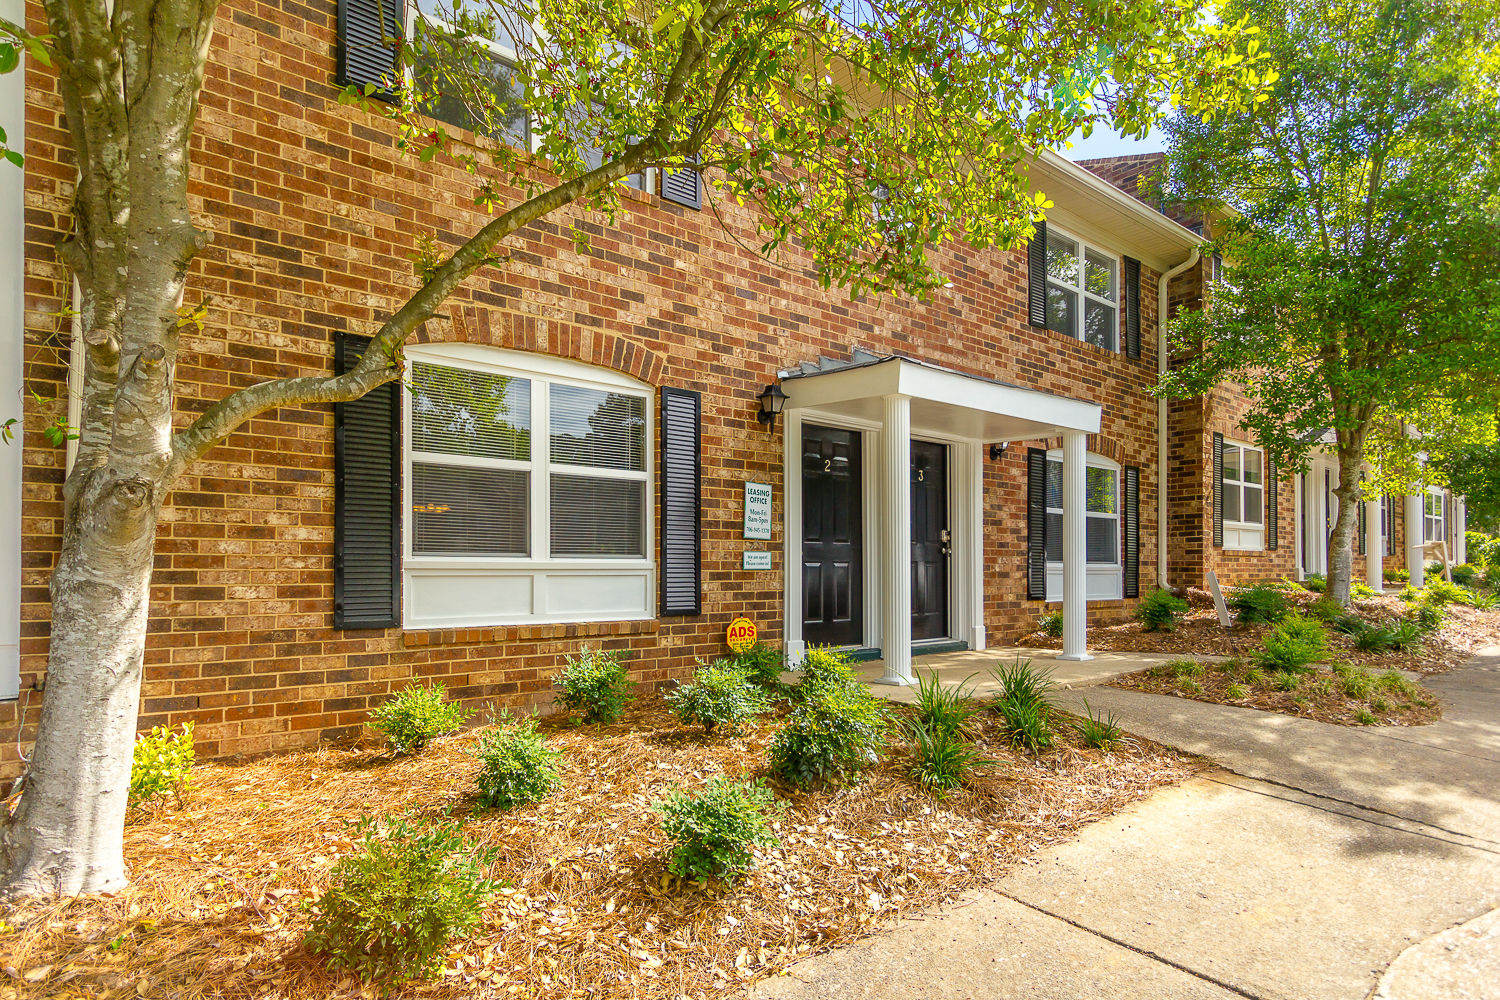 Annaberg Apartments And Townhomes In Augusta Georgia